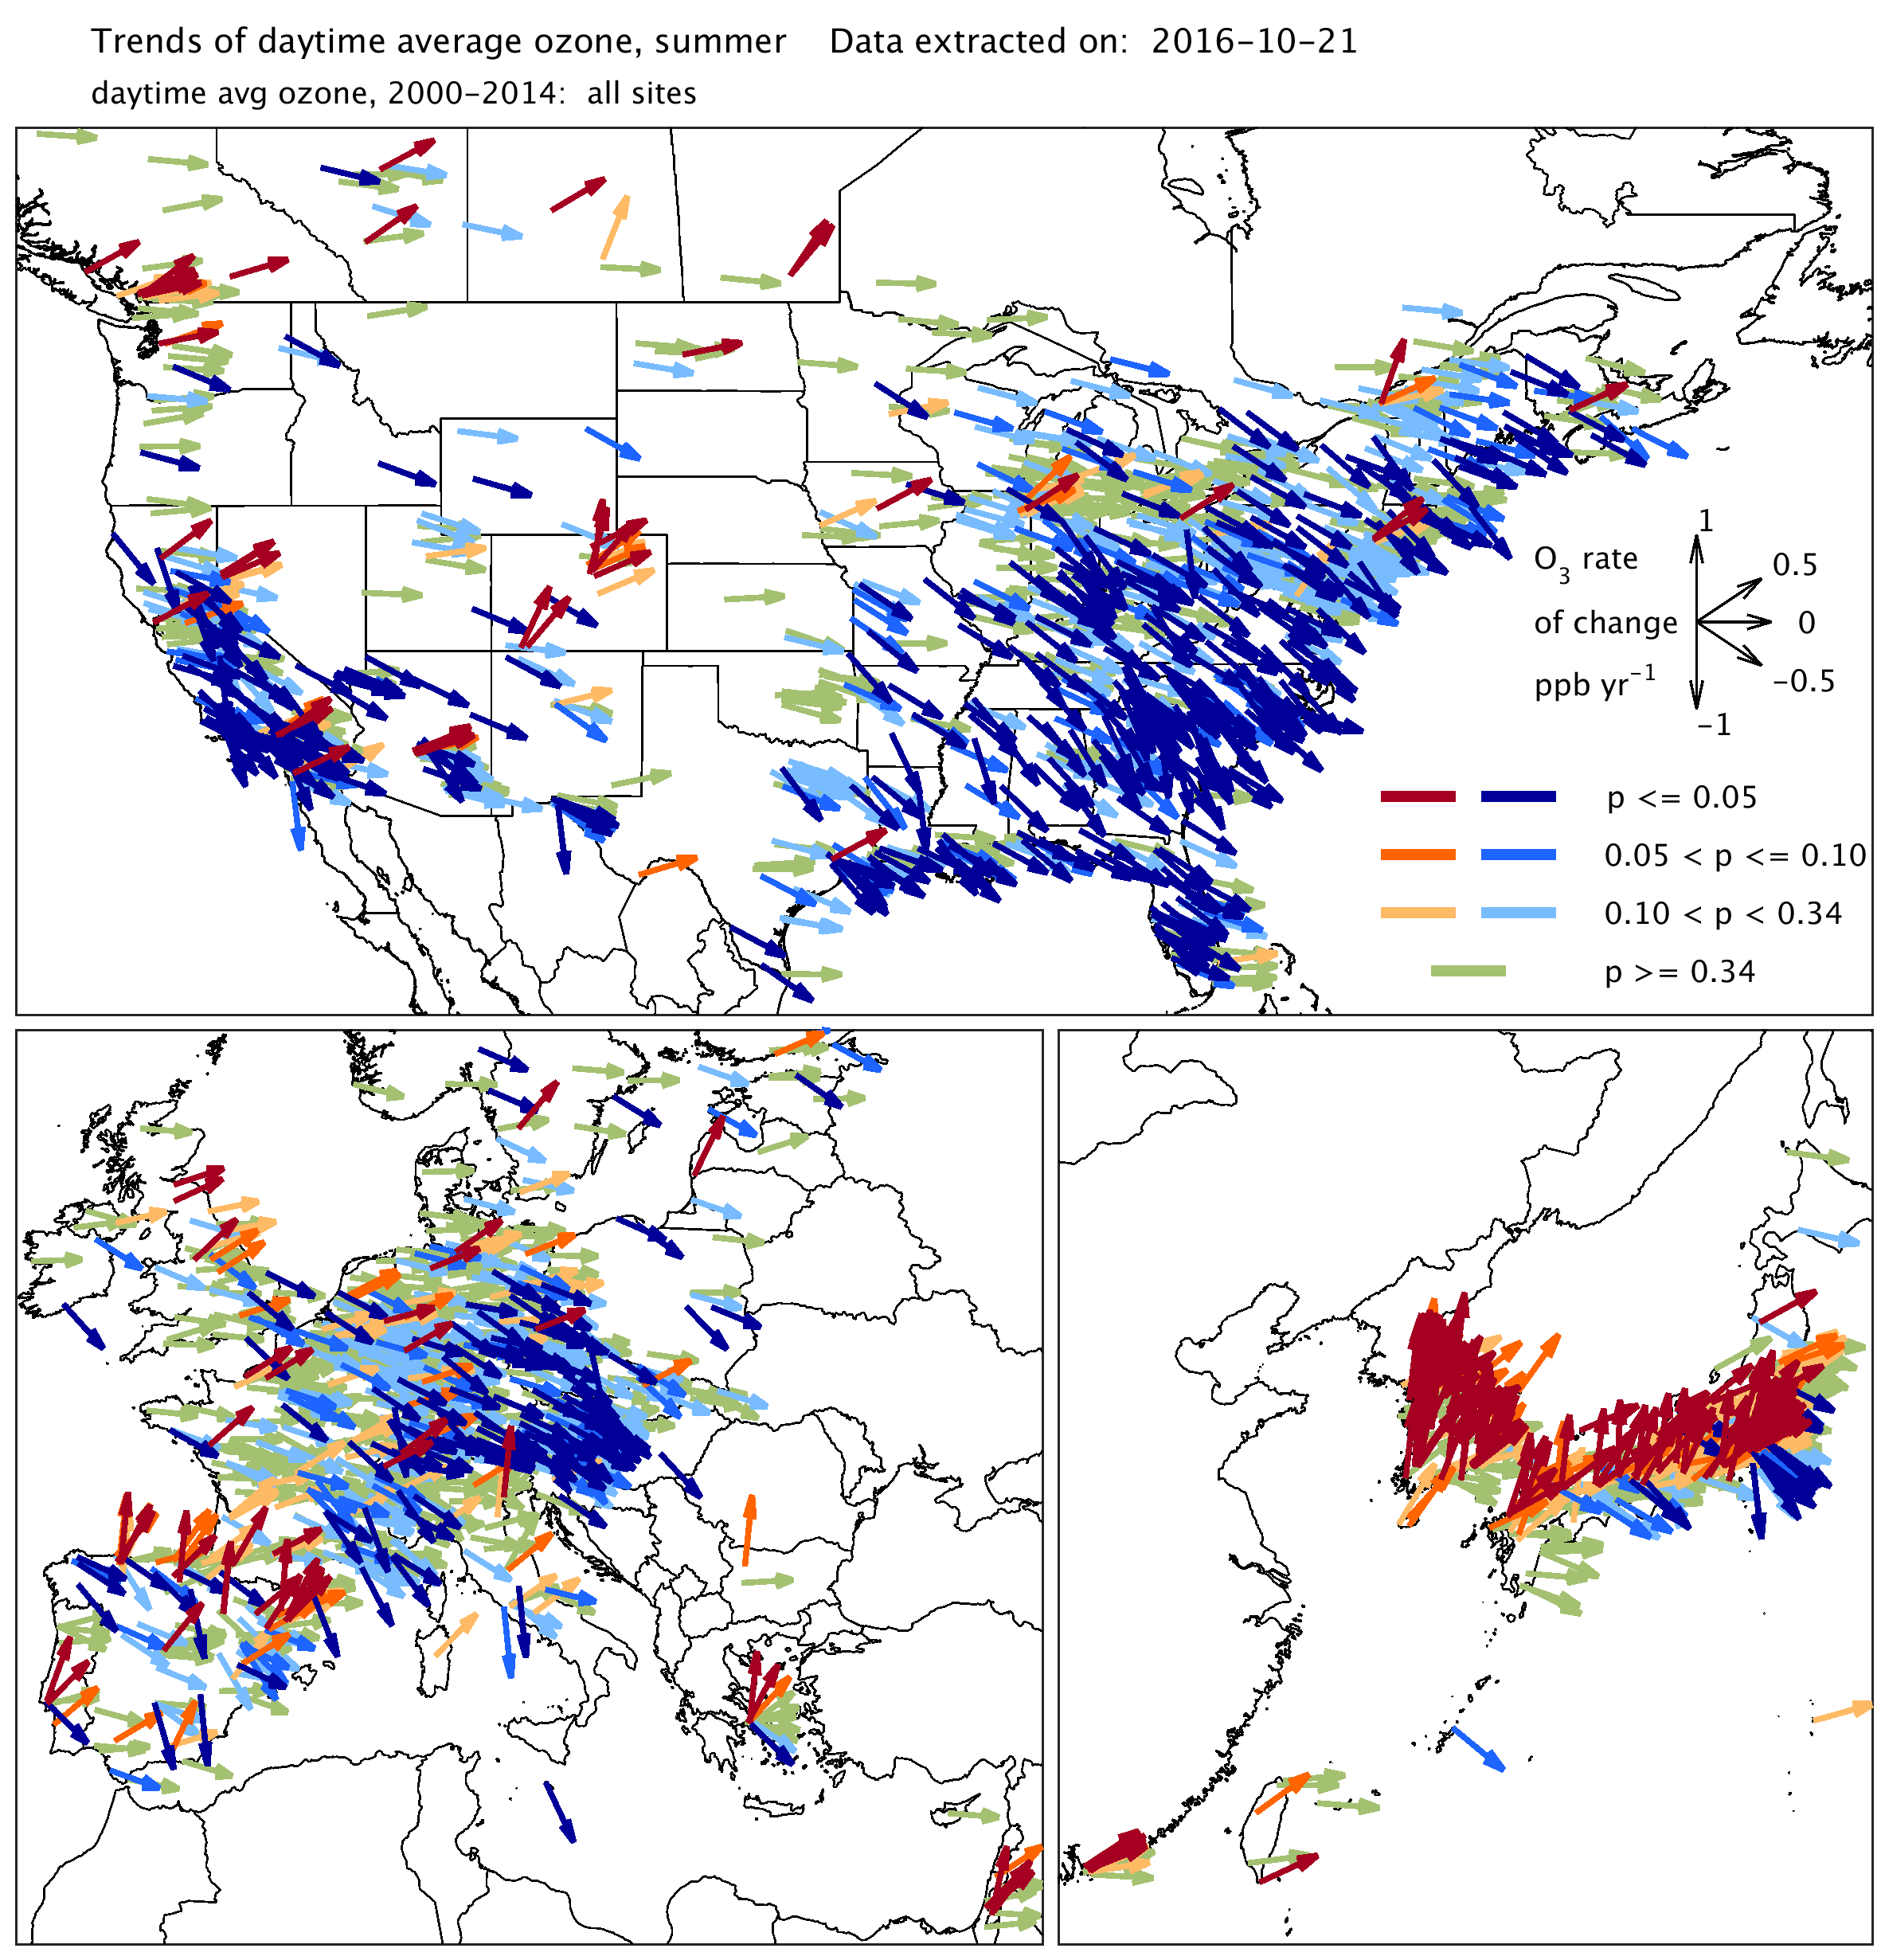 Trends of daytime (8:00 – 20:00 local time) average ozone at all available surface sites in three regions during summertime conditions (April-September in the Northern Hemisphere, and October-March in the Southern Hemisphere) for the period, 2000-2014.  Vector angle indicates the ozone rate of change, while vector colors indicate the p-value associated with each trend vector.